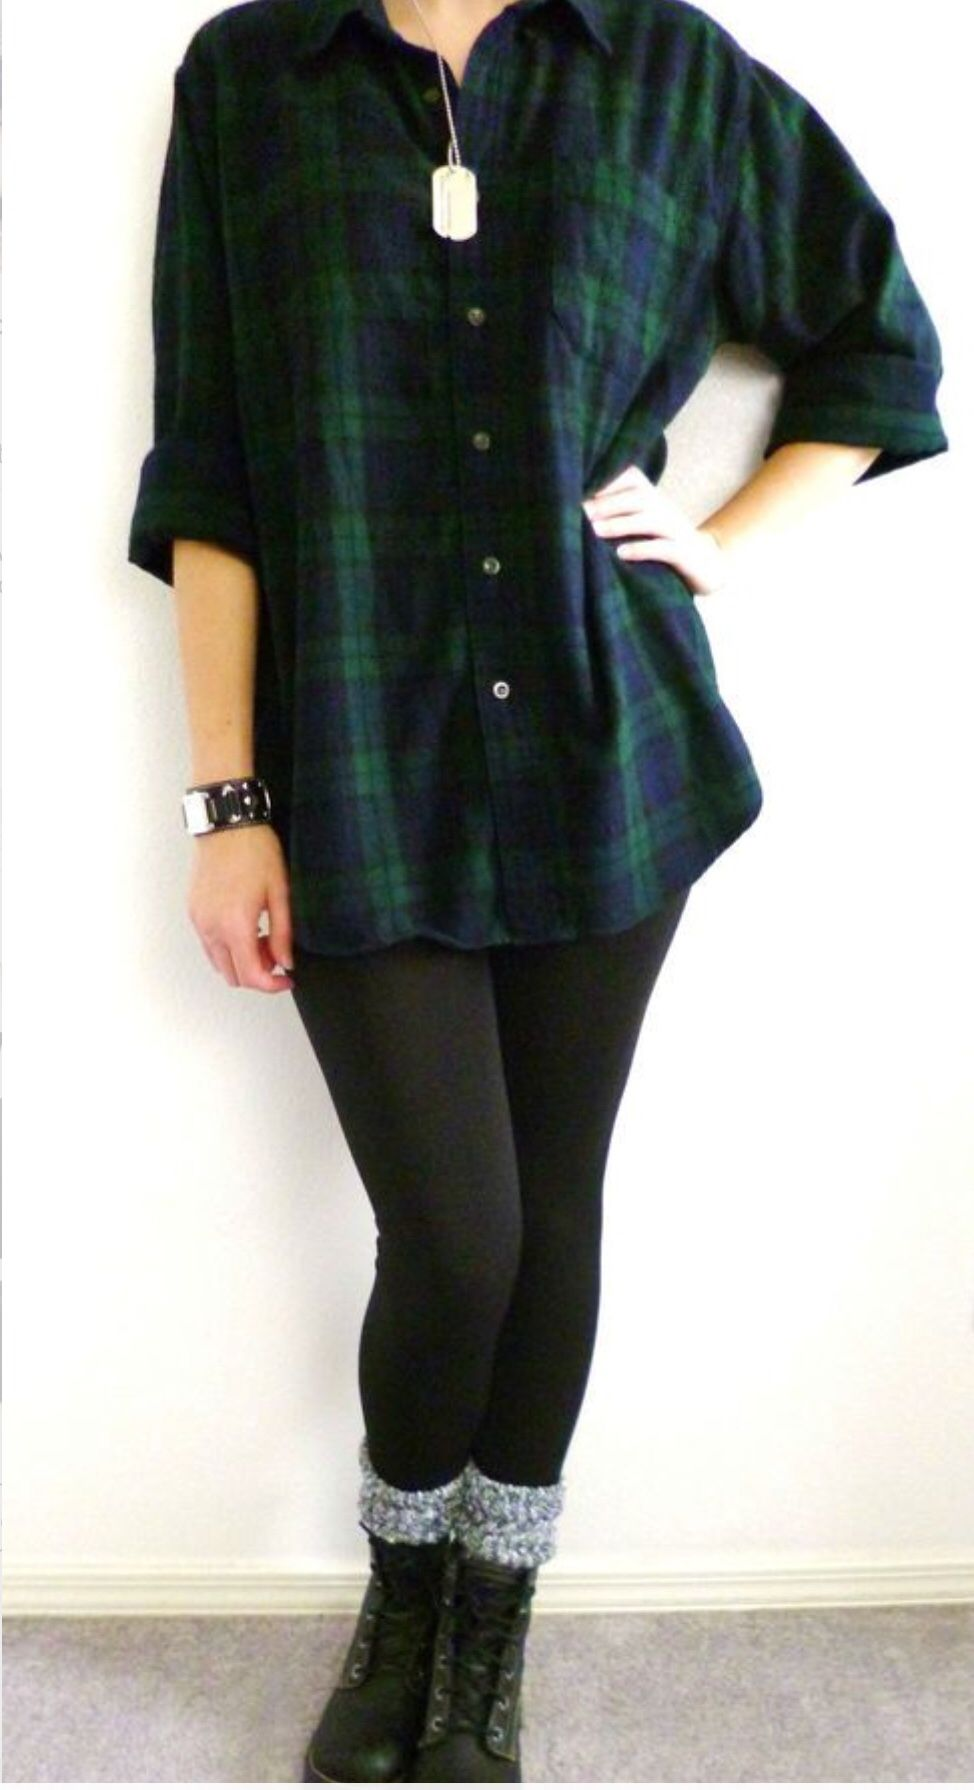 Flannel shirt outfit women  Simple and cute outfit  outfits  Pinterest  Flannel outfits